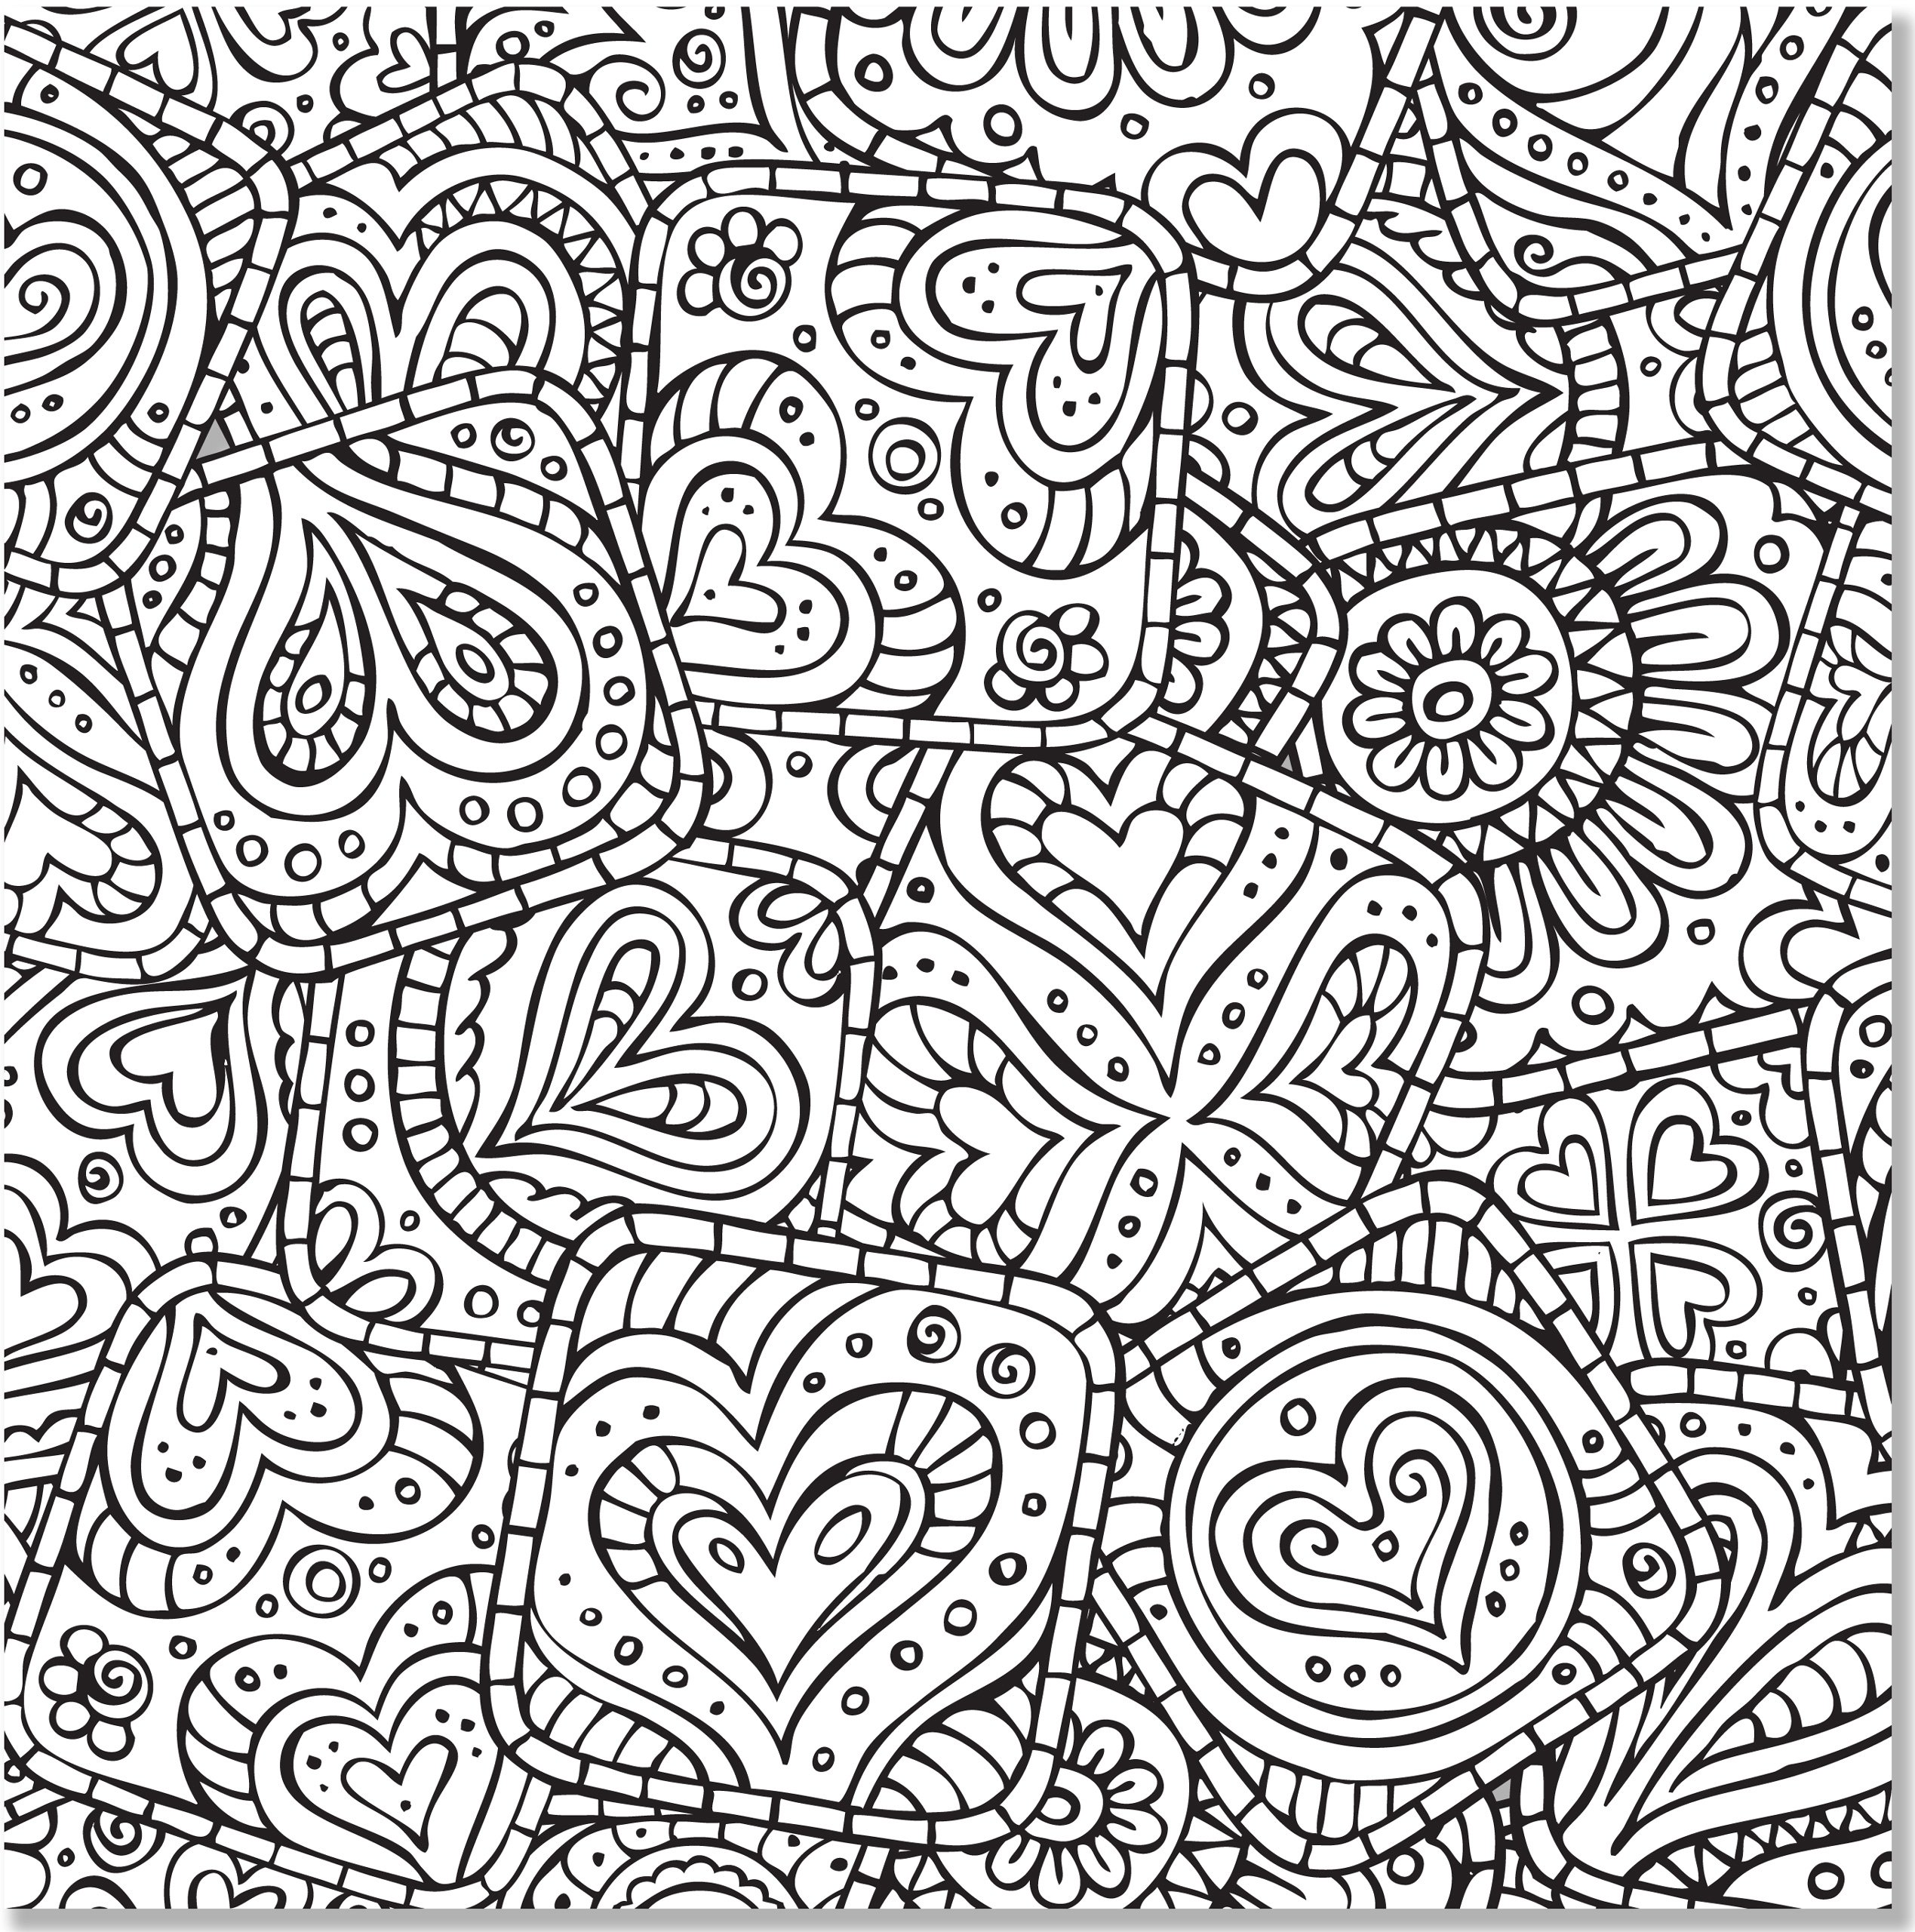 Amazoncom Doodle Designs Adult Coloring Book 31 stress